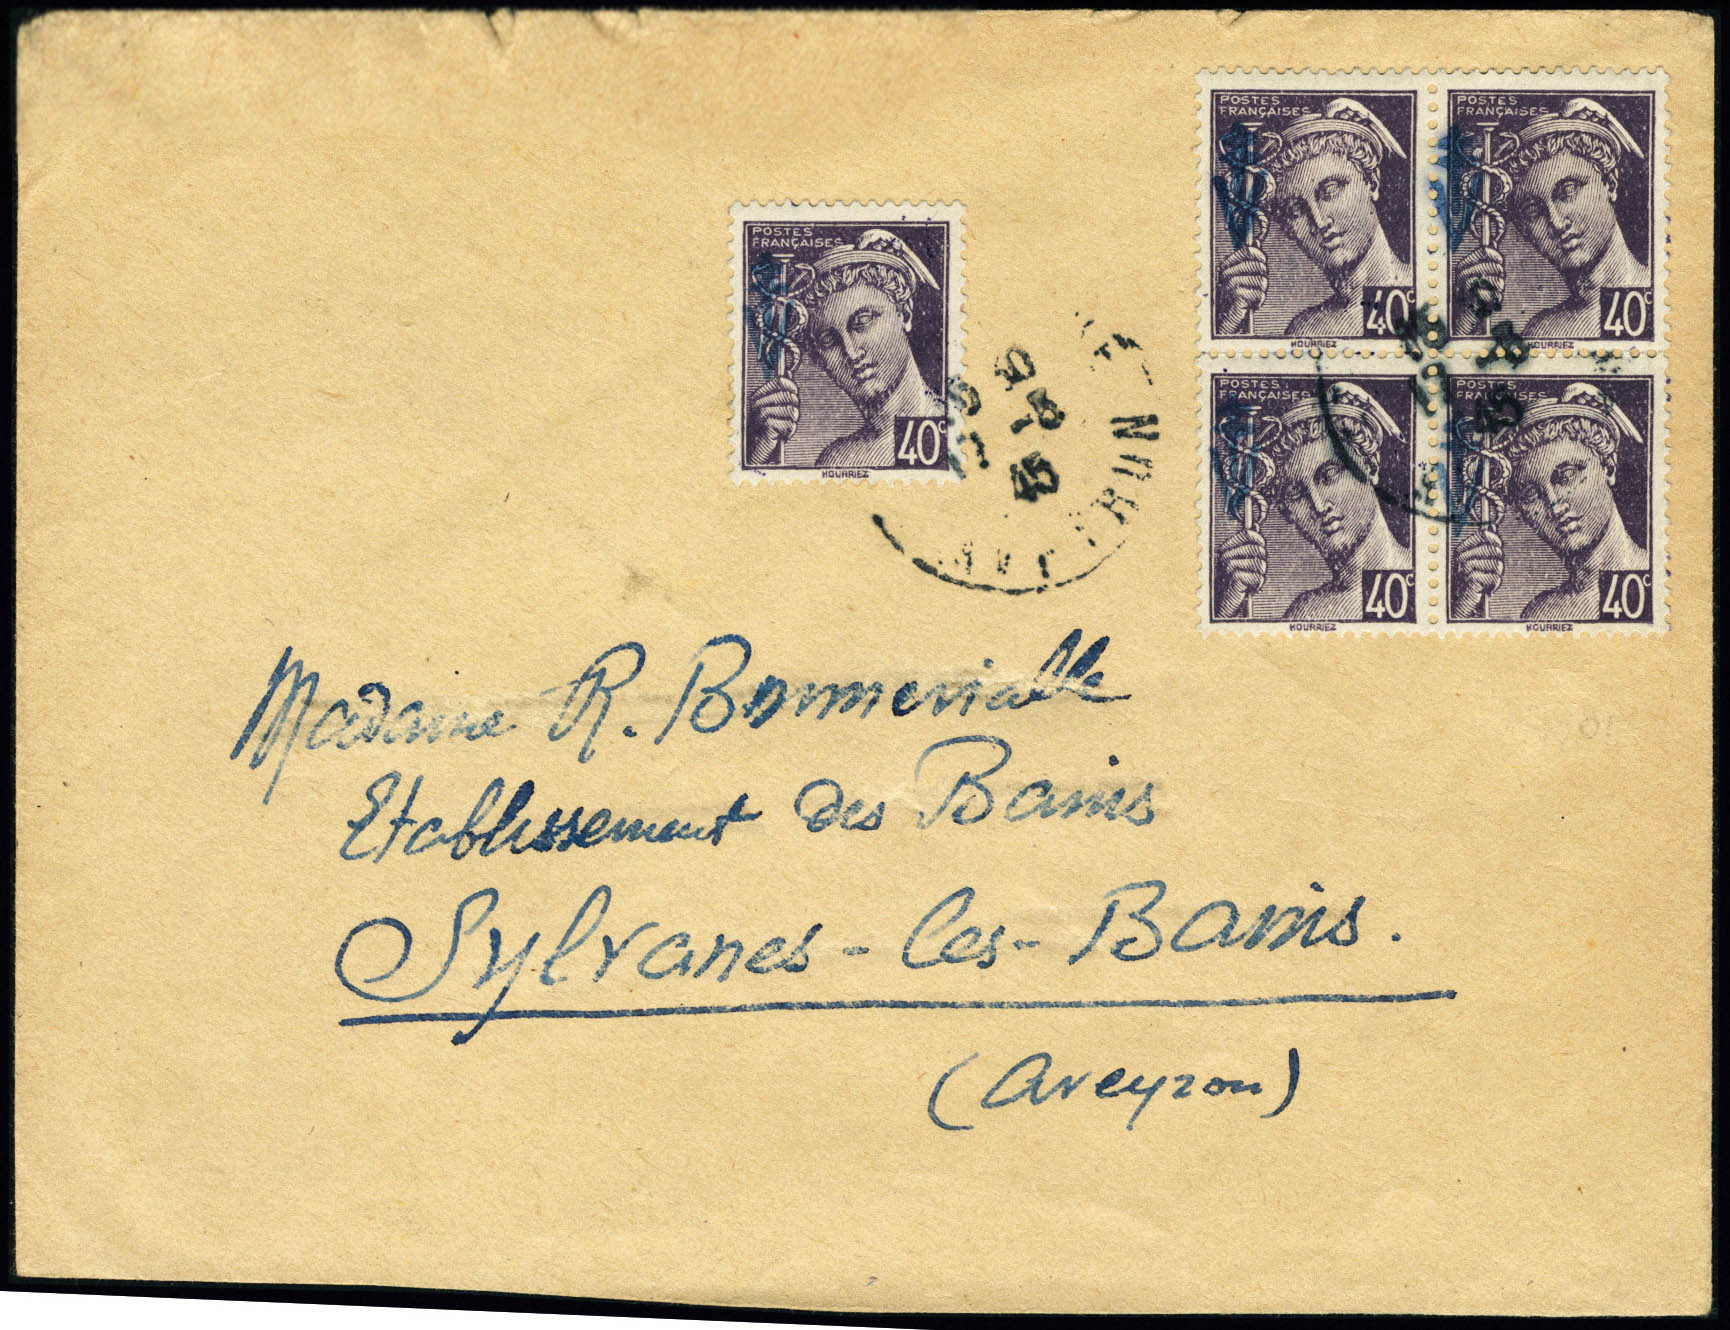 Lot 1487 - France timbres de liberation - cat. mayer -  Francois Feldman F.C.N.P François FELDMAN sale #124